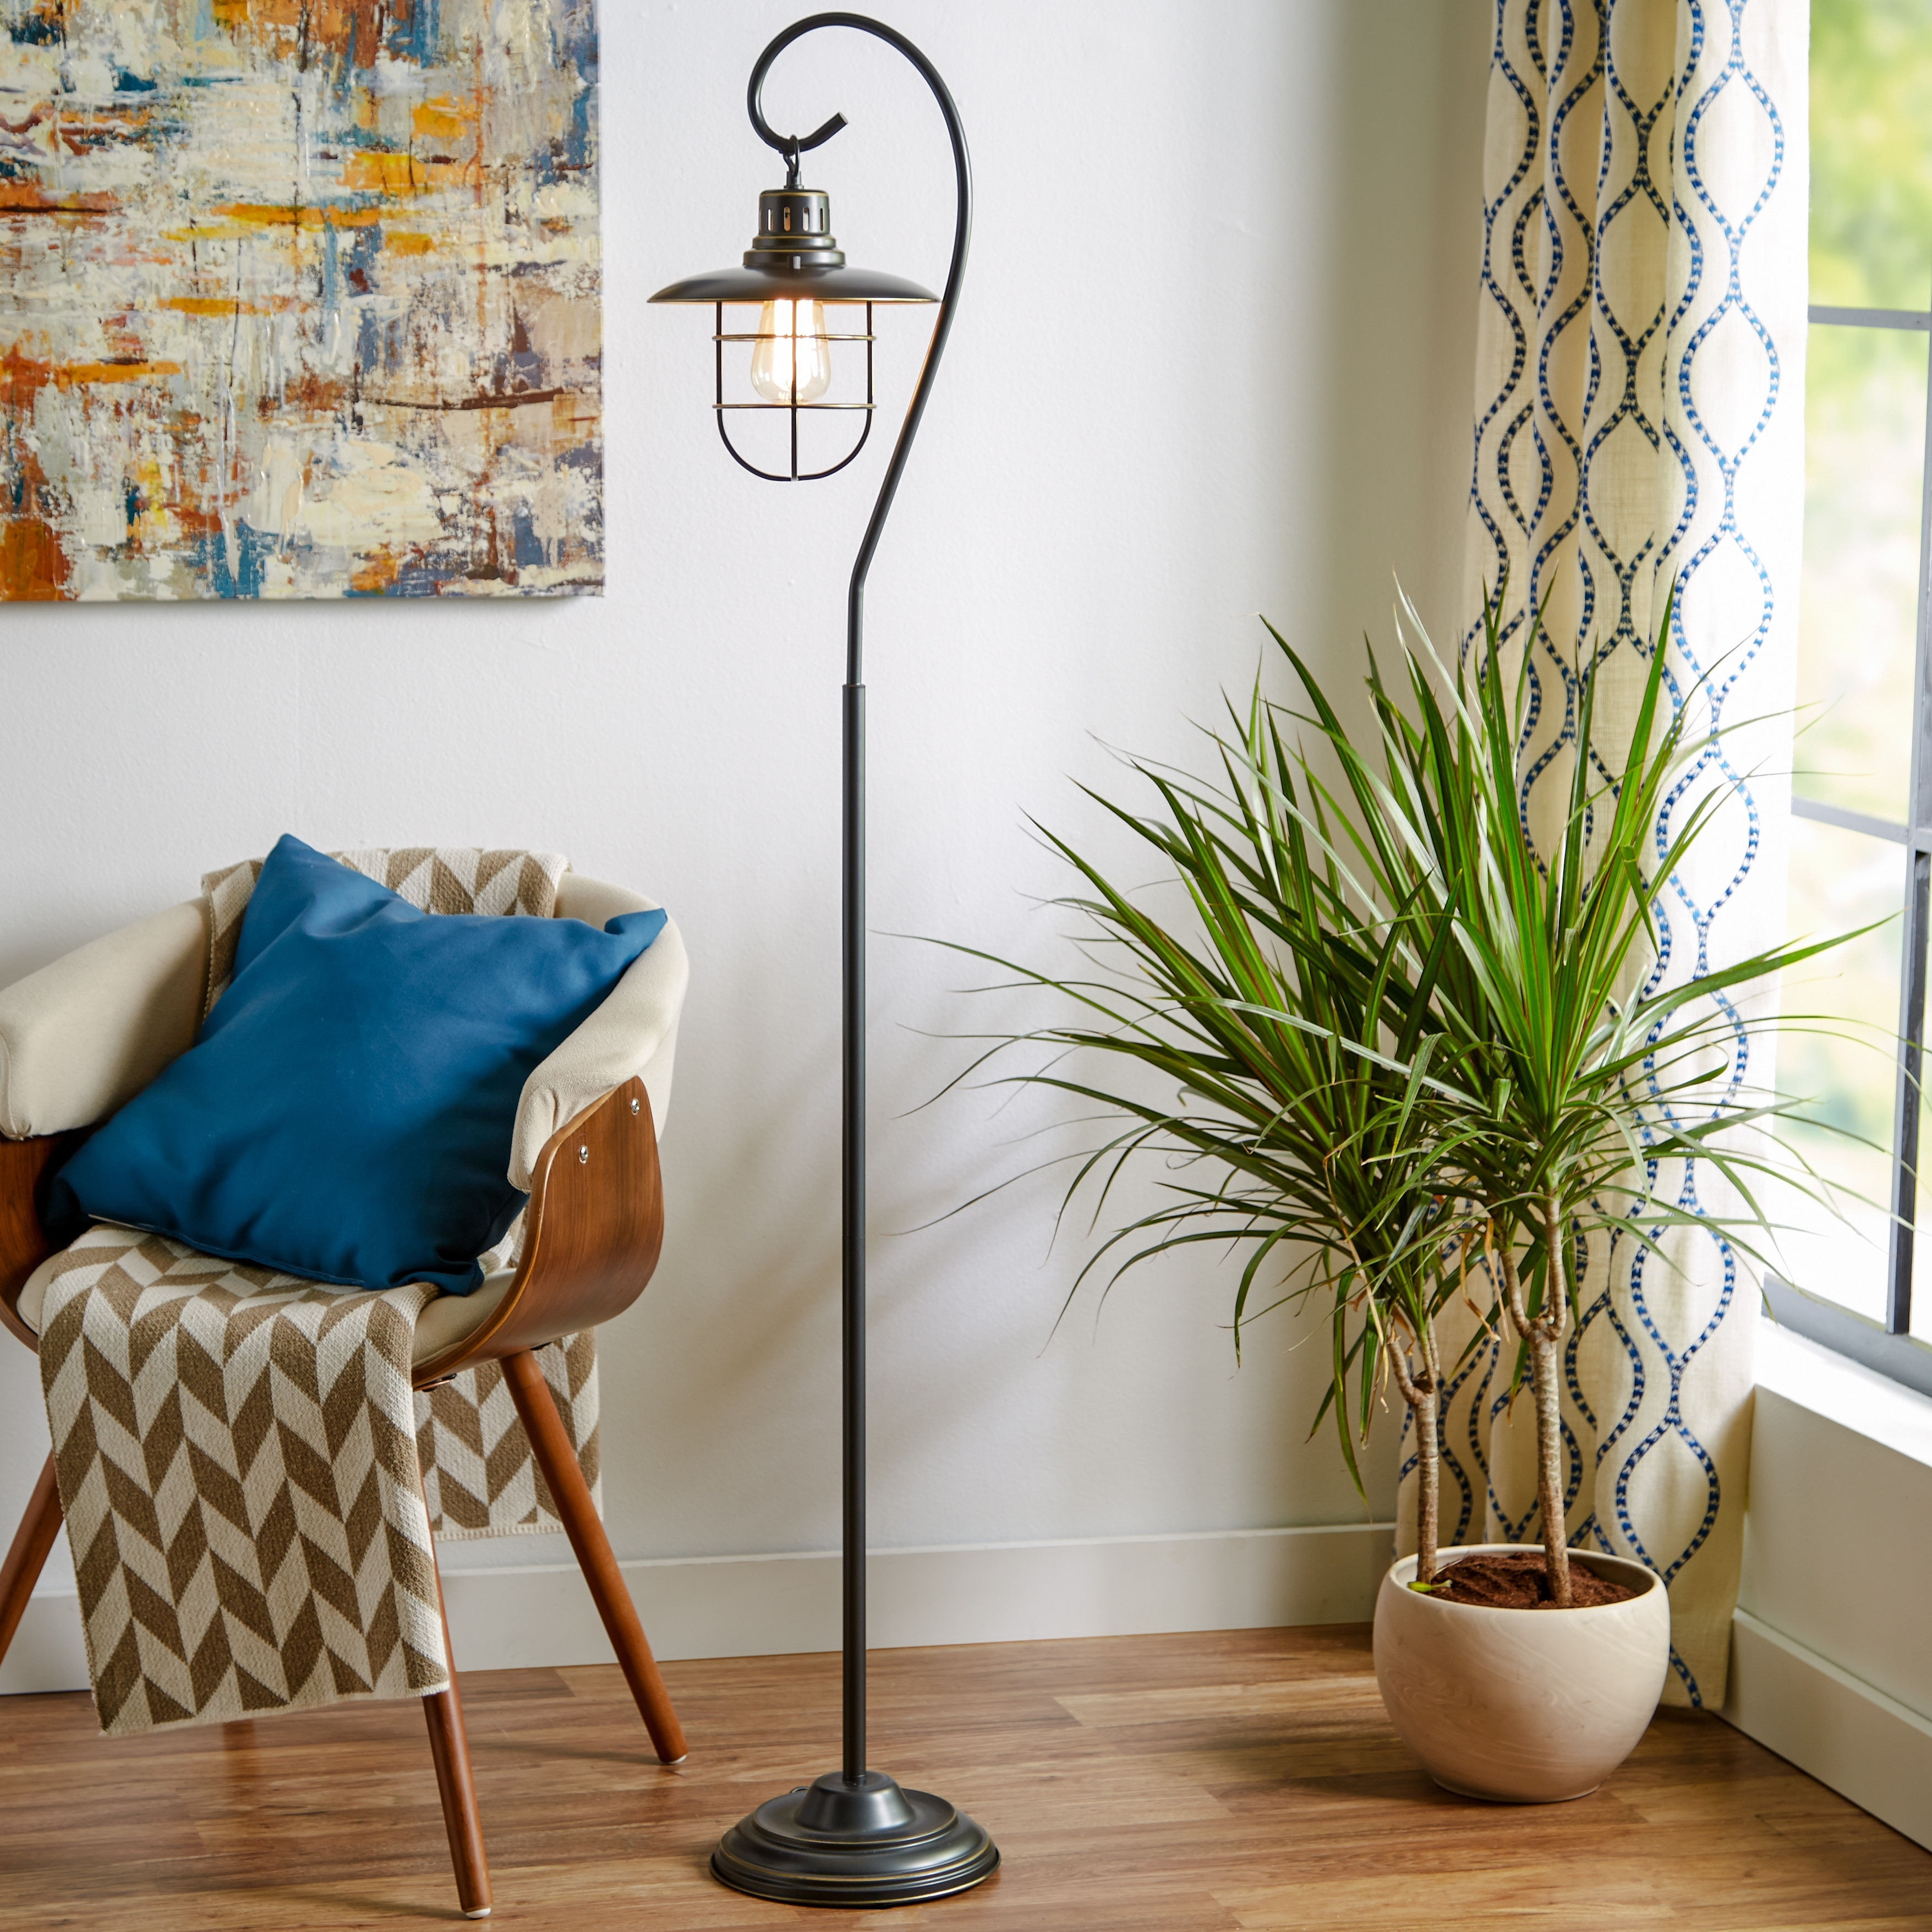 Inspiration about Lamp : Lovely Floor Lamp Coastal Living Floor Lamps Coastal Floor Intended For Coastal Living Room Table Lamps (#7 of 15)